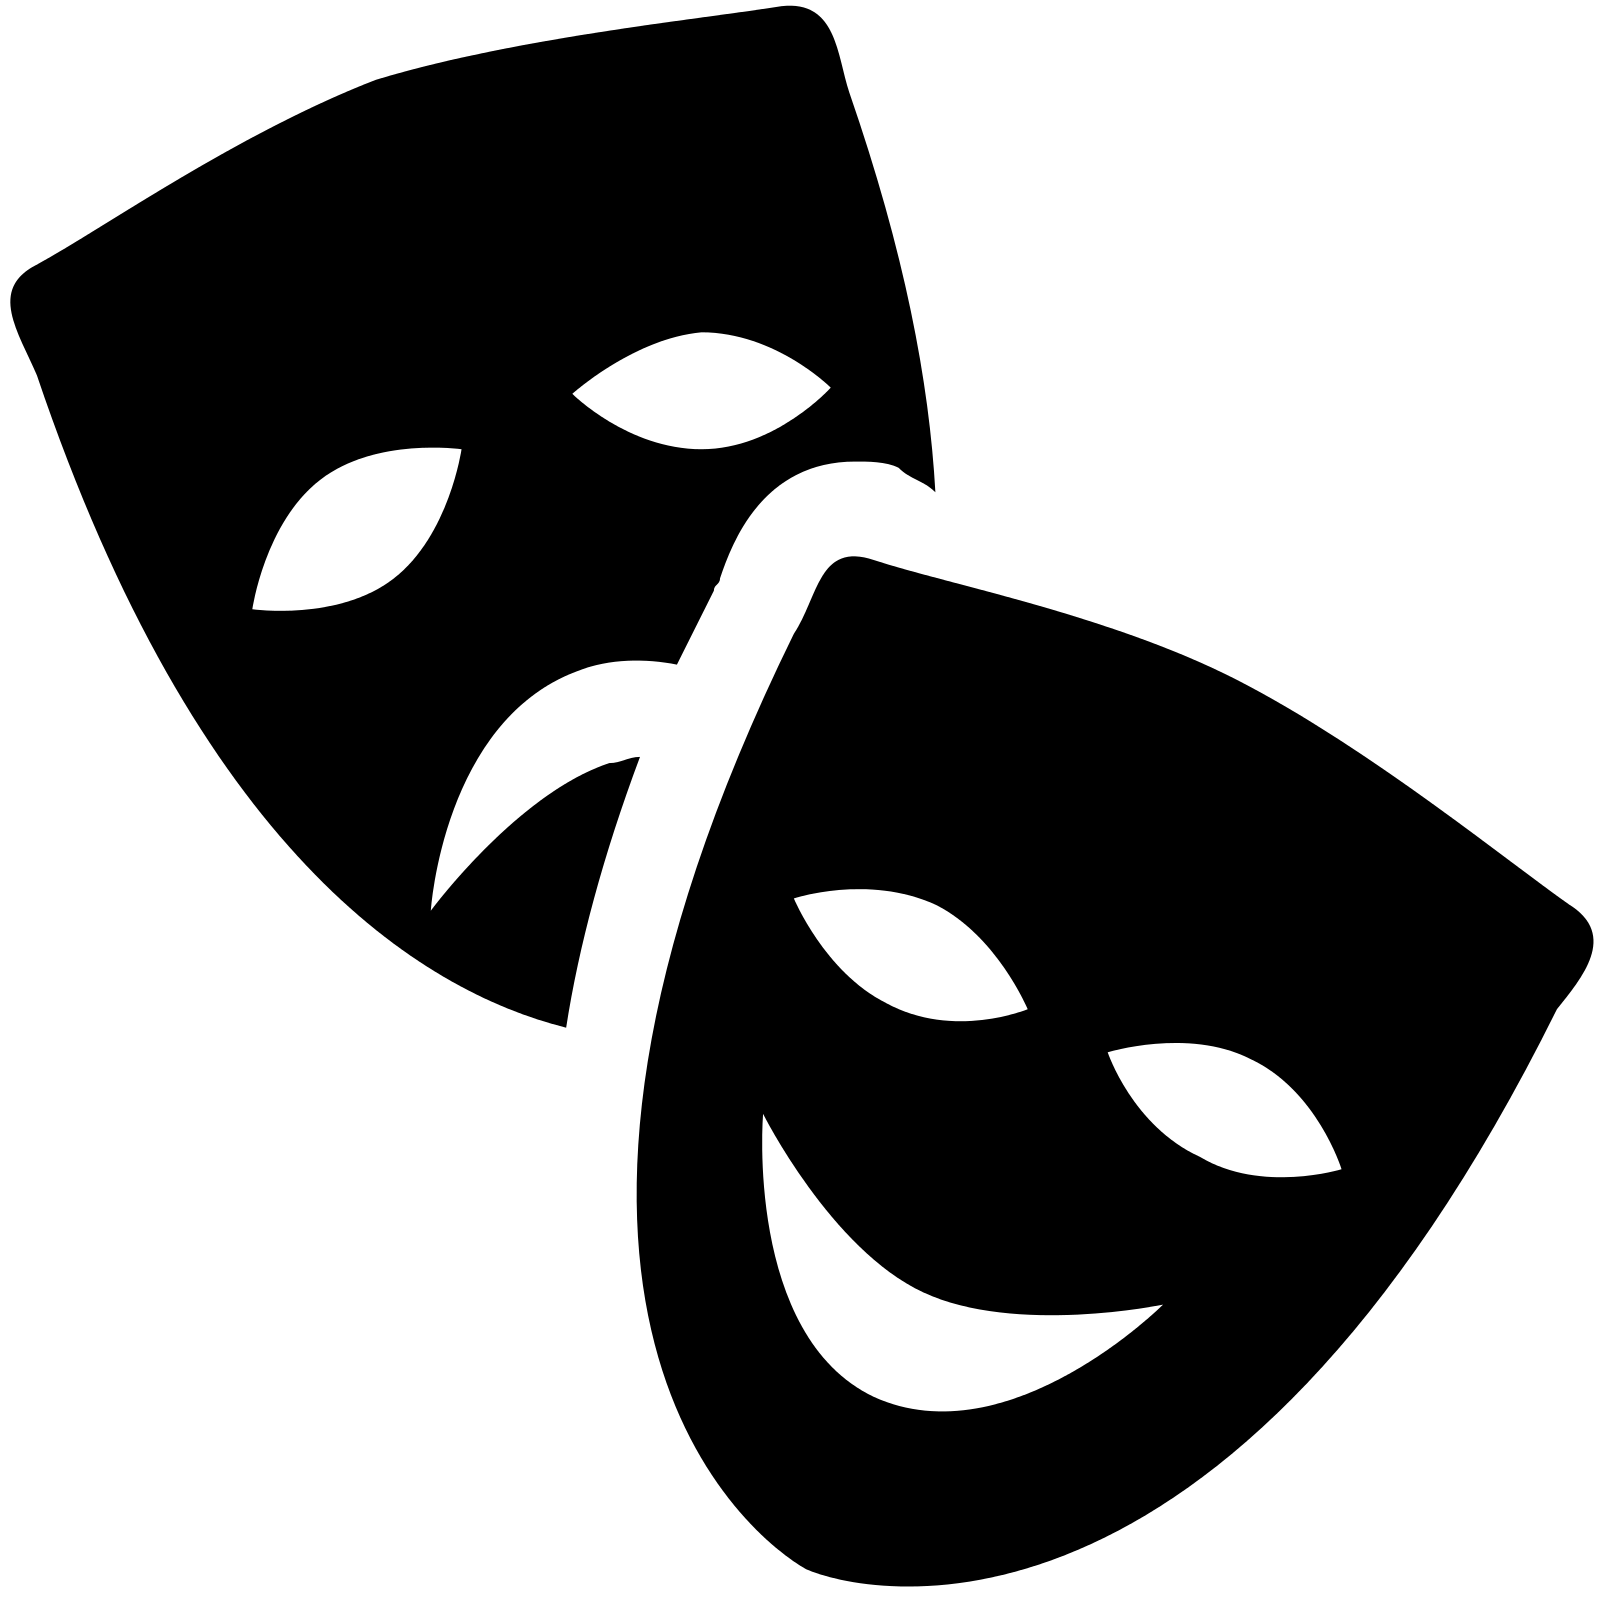 jpg download Mask clipart performing art. Symbol free on dumielauxepices.